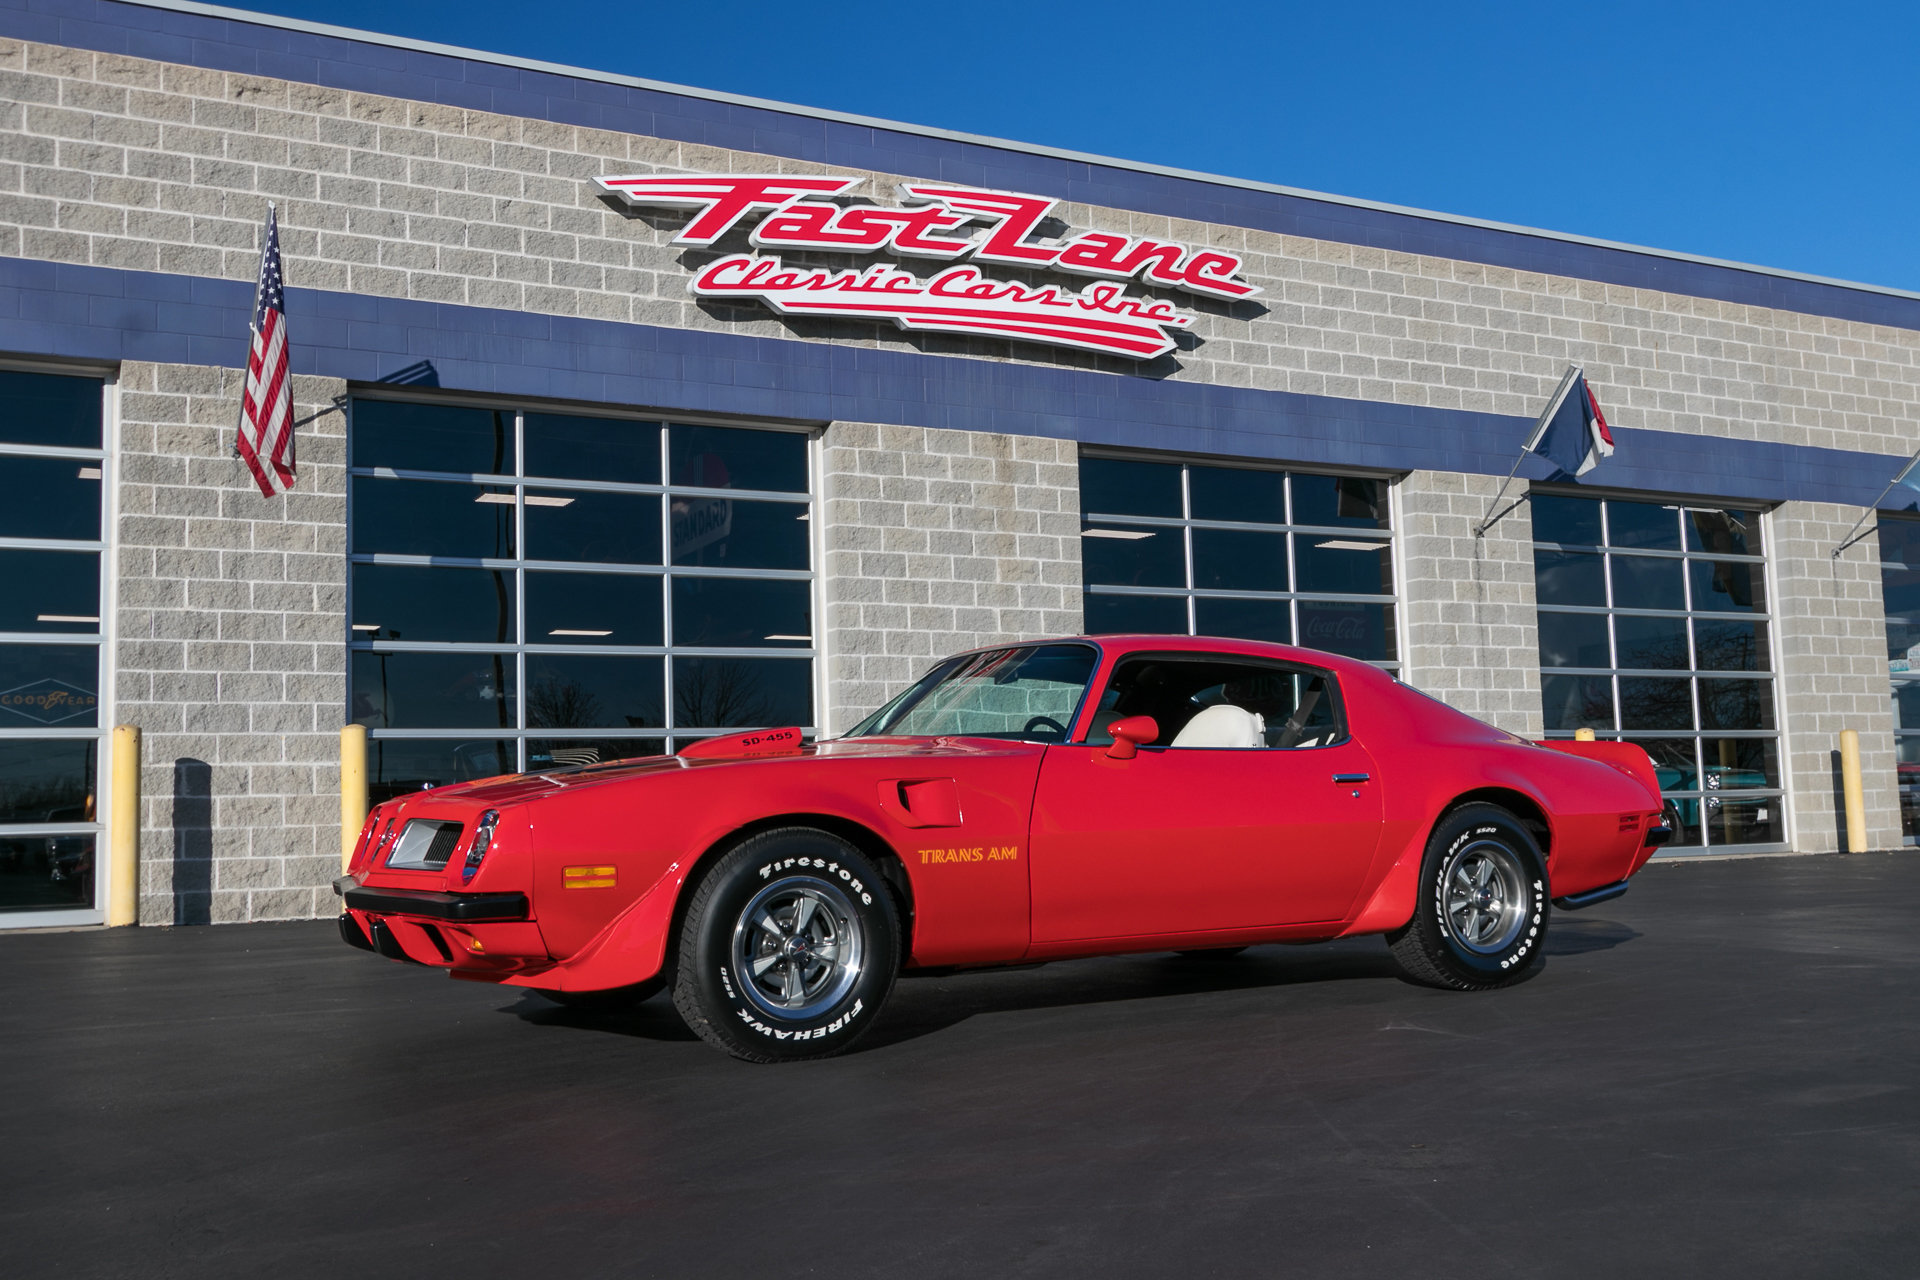 595930e5a16f0 hd 1974 pontiac trans am super duty